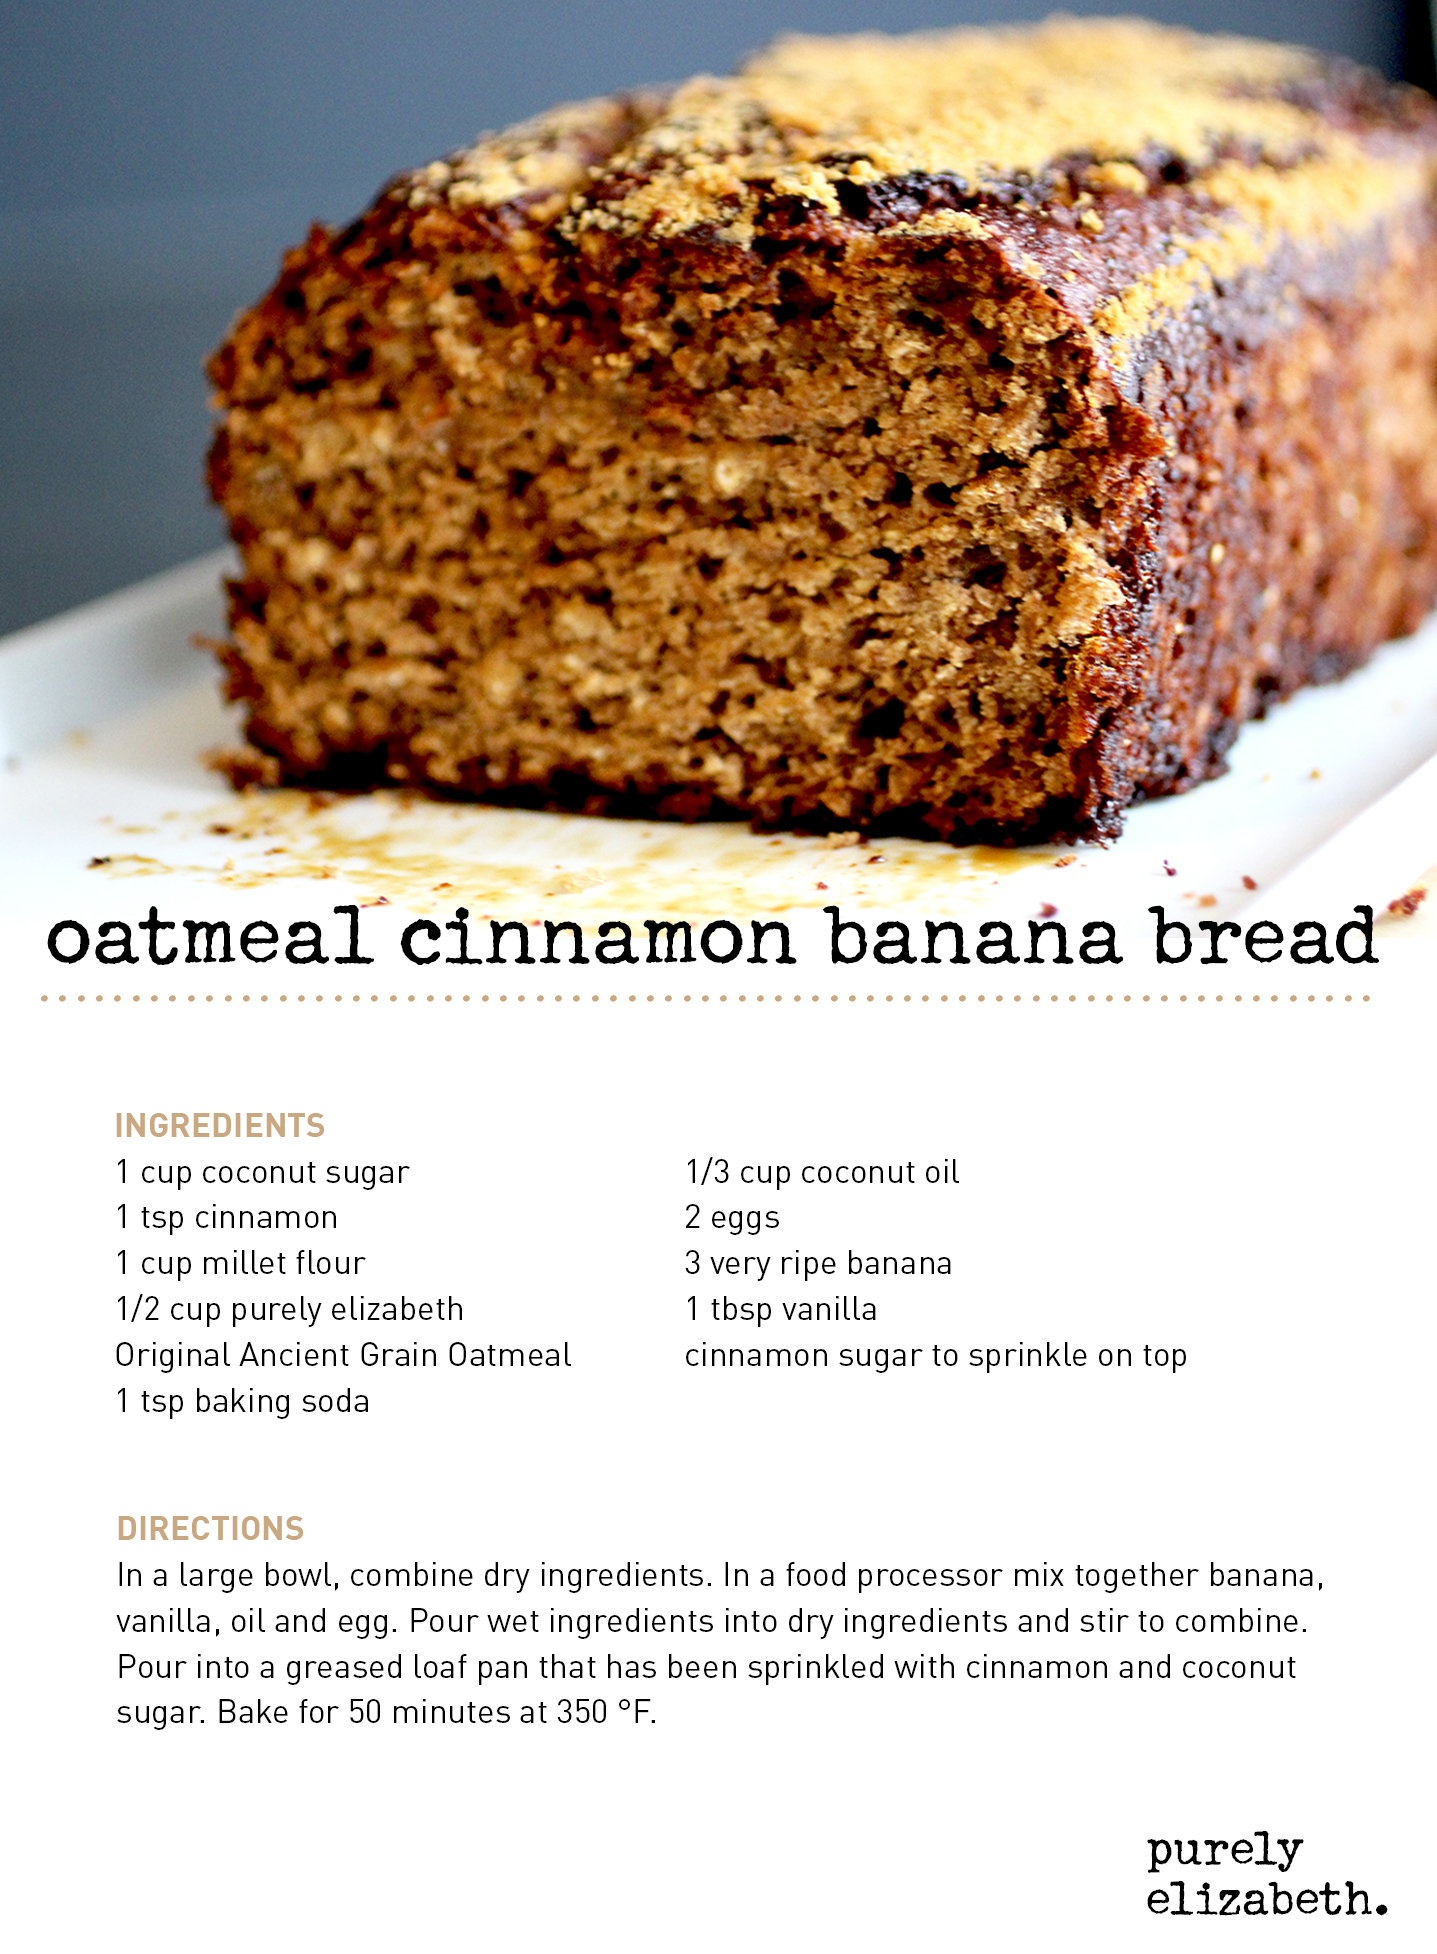 Oatmeal cinnamon banana bread eat purely live purely forumfinder Images